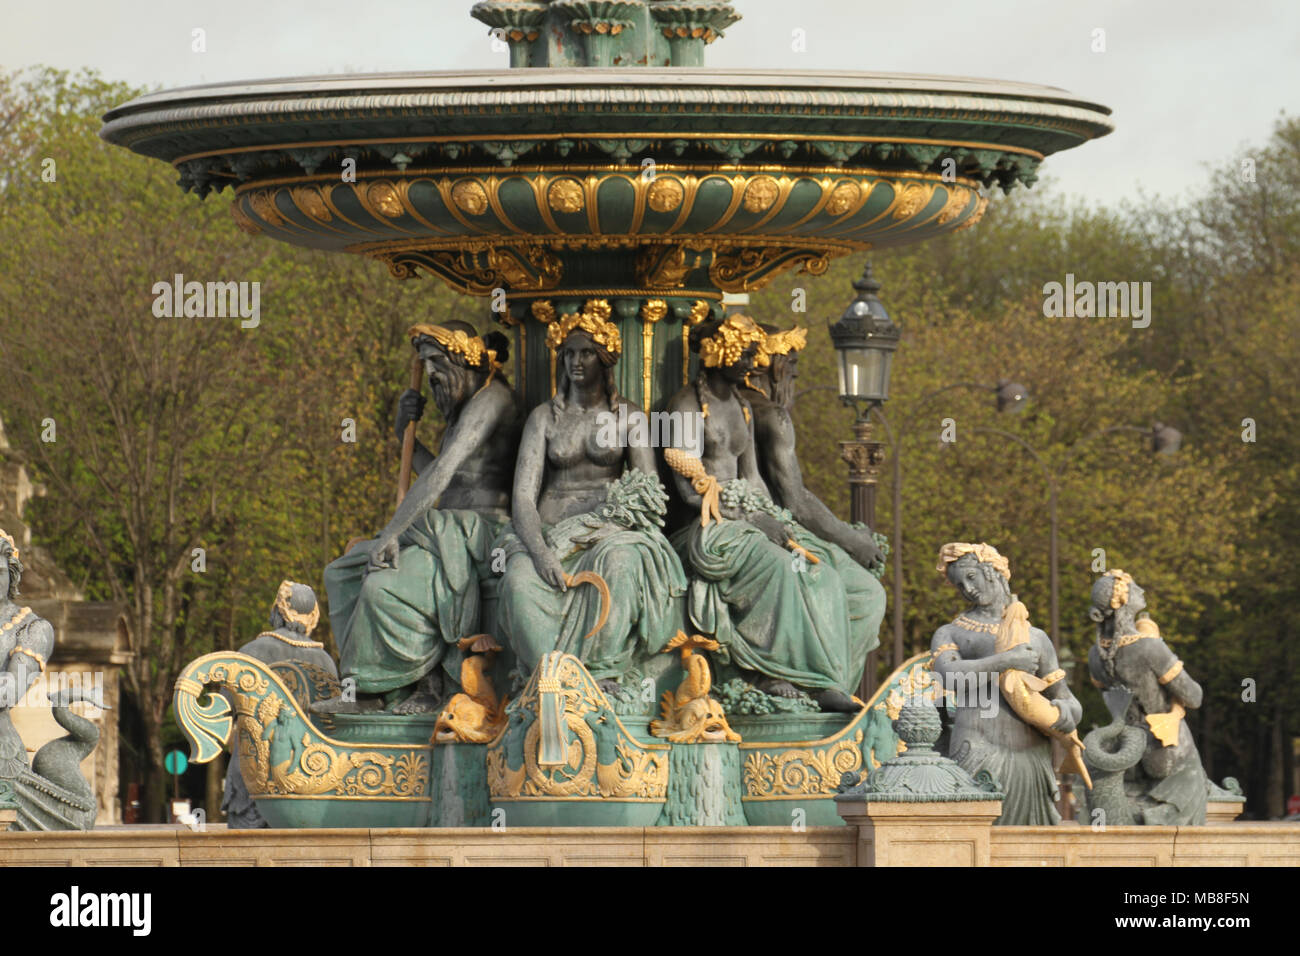 Paris, France -  04 April, 2018. The Fontaines de la Concorde, one of two with the Obelisk of Luxor and Eiffel Tower seen on the background. General view of Paris, France. @ David Mbiyu/Alamy Live News - Stock Image